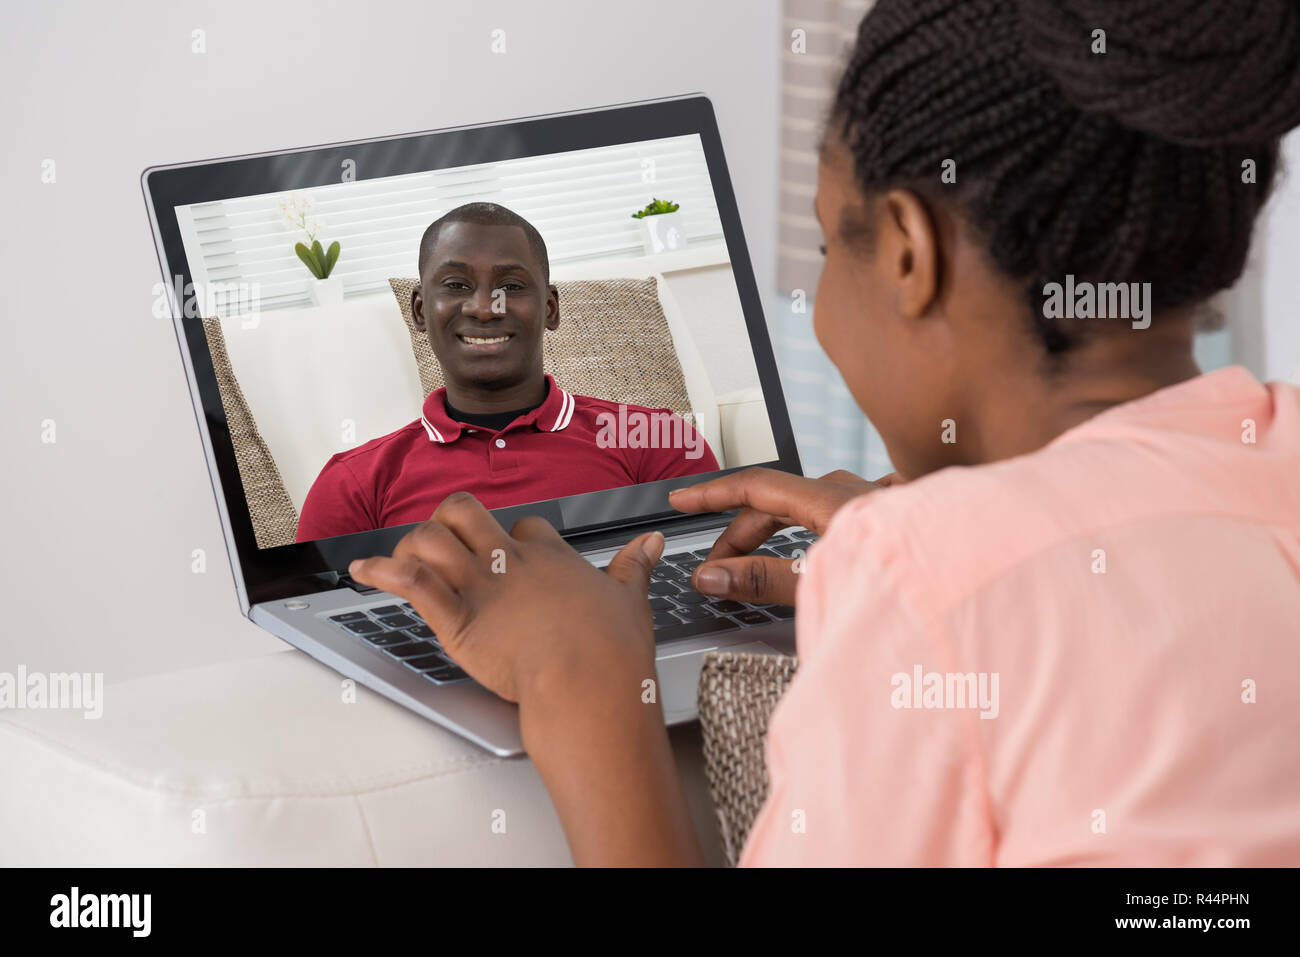 Woman Video Chatting With Man On Laptop - Stock Image